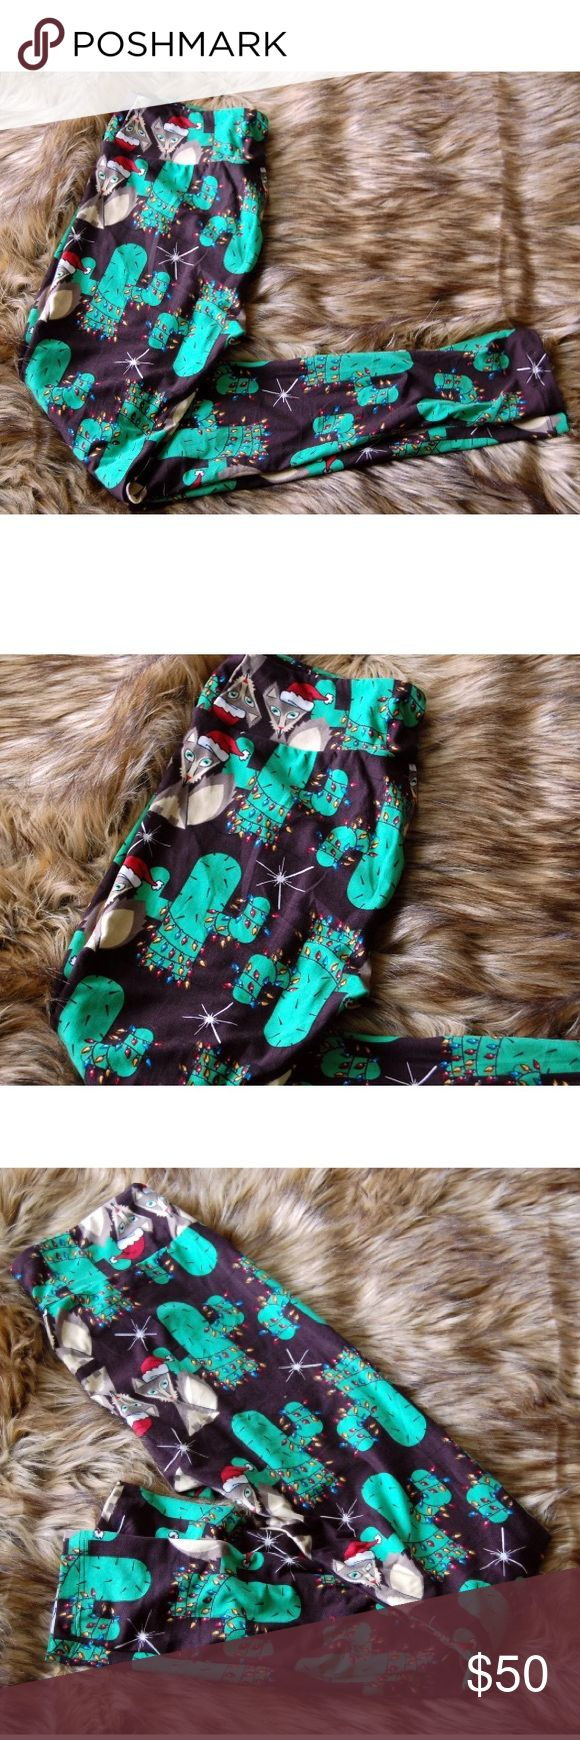 Lularoe cactus fox Santa Christmas leggings black New Lularoe OS Leggings Fox and Cactus in black Tag has been removed but never worn. LuLaRoe Pants Leggings